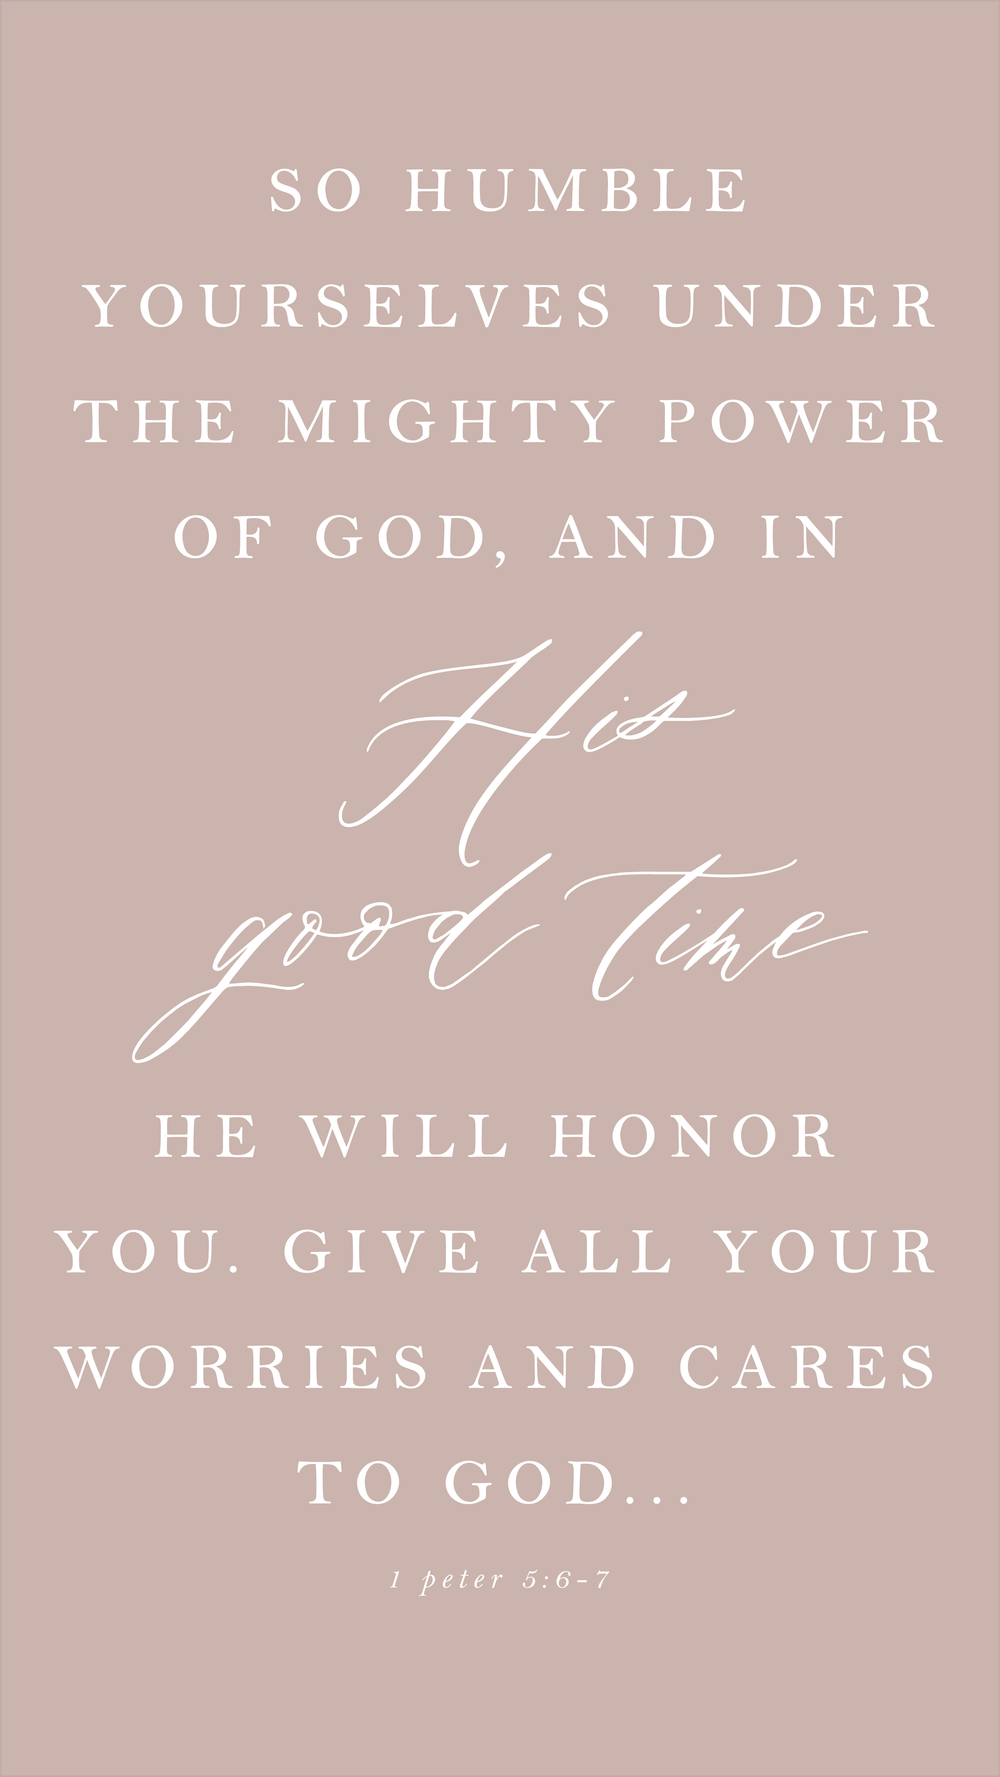 scripture graphic_1peter5-6-7.png